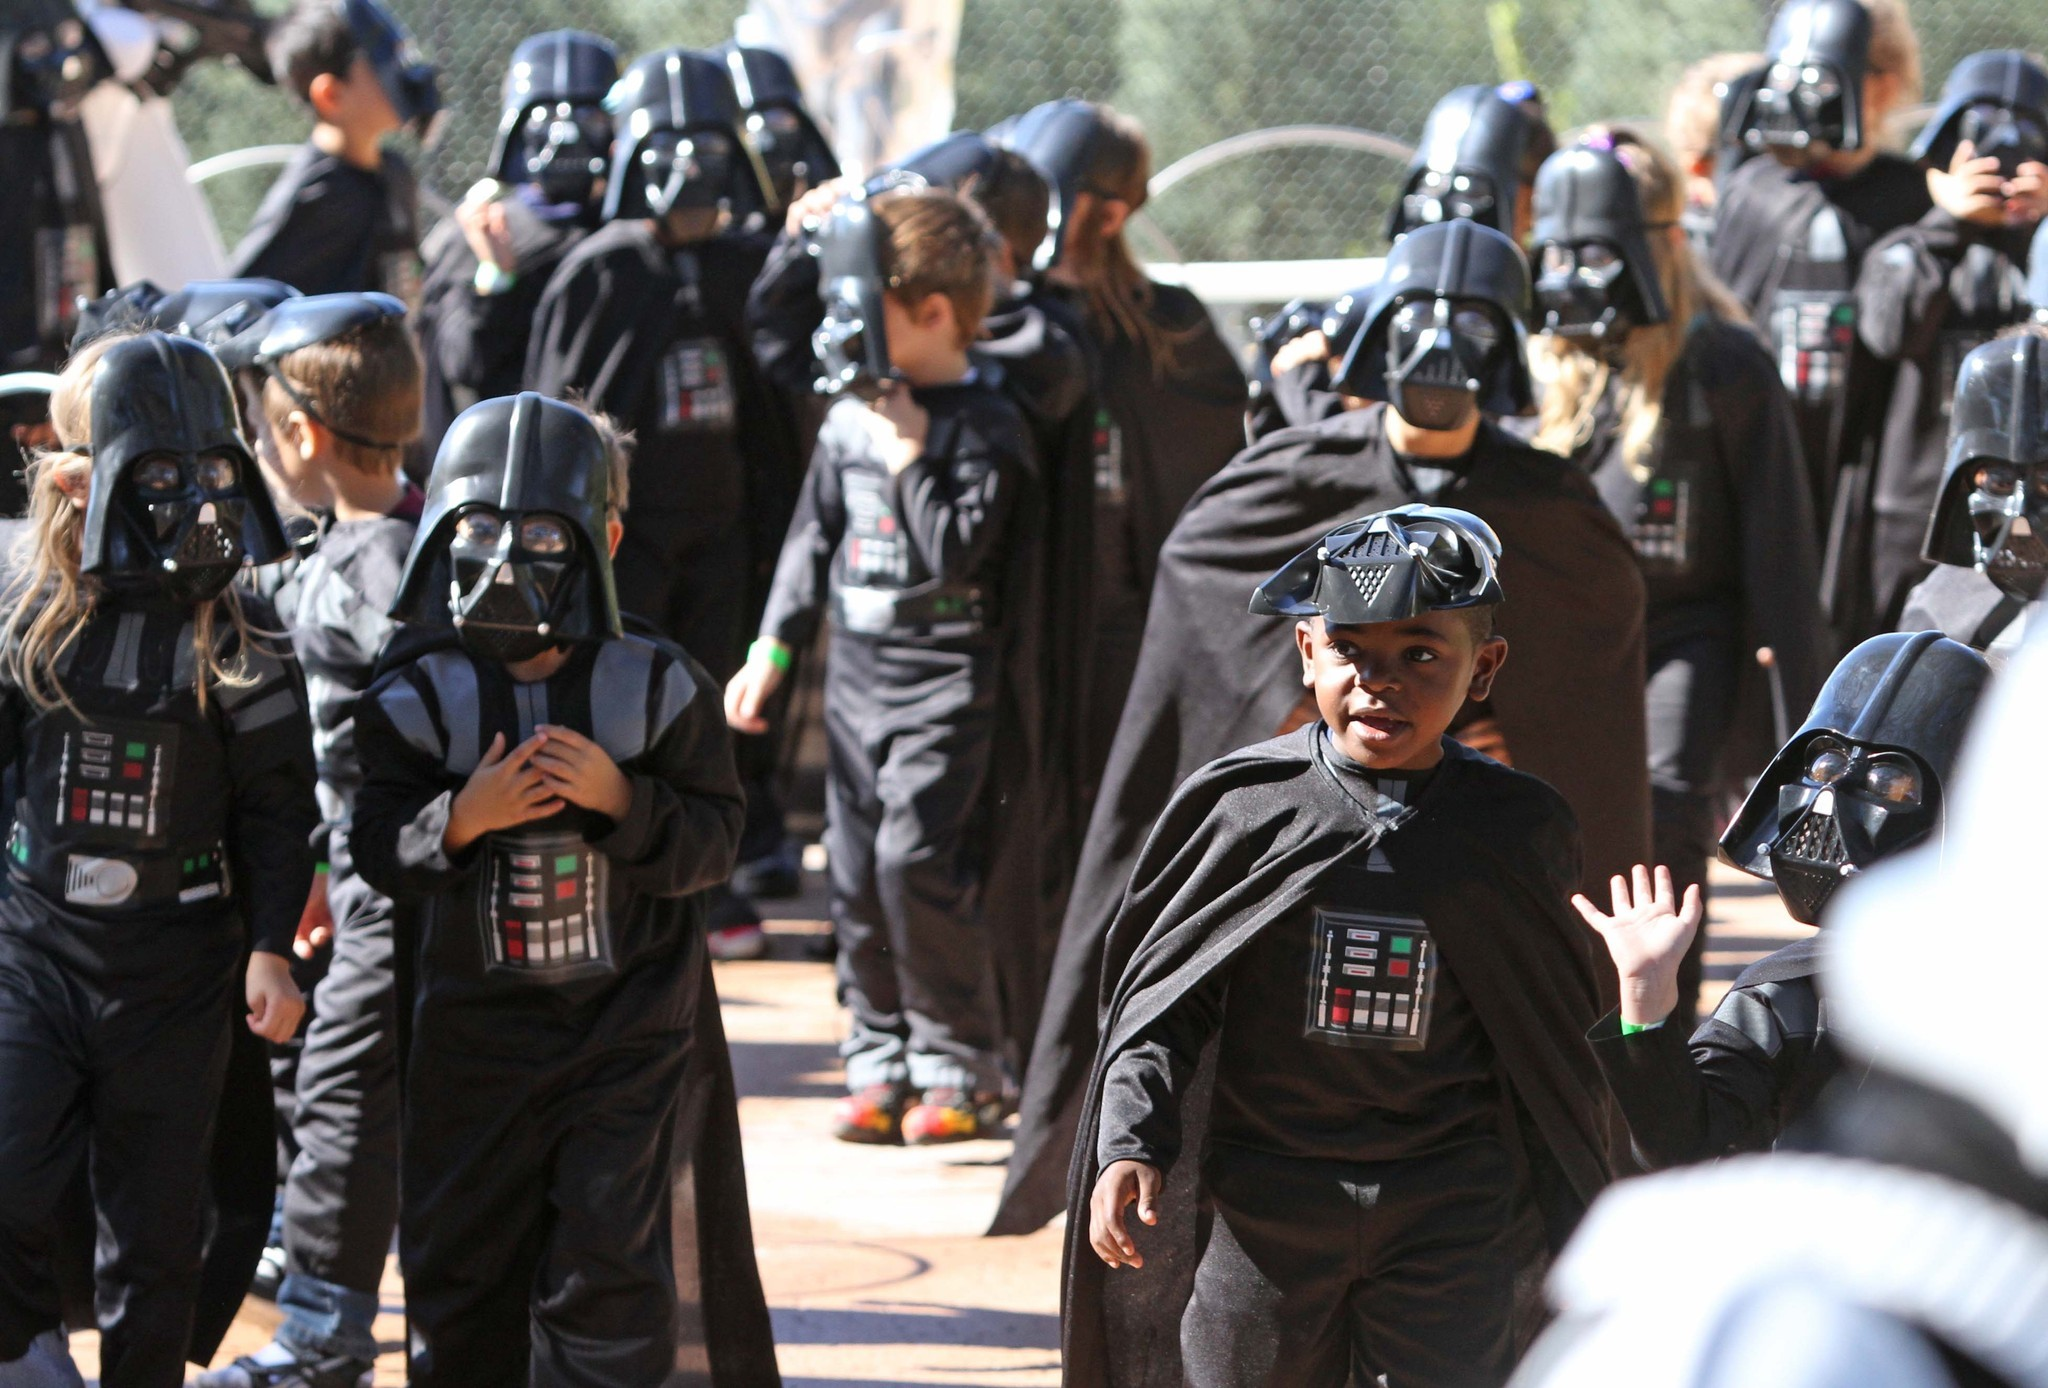 Mini-sized Darth Vaders march in during the opening of the Stars Wars Miniland display at Legoland Florida, Friday, November 9, 2012.